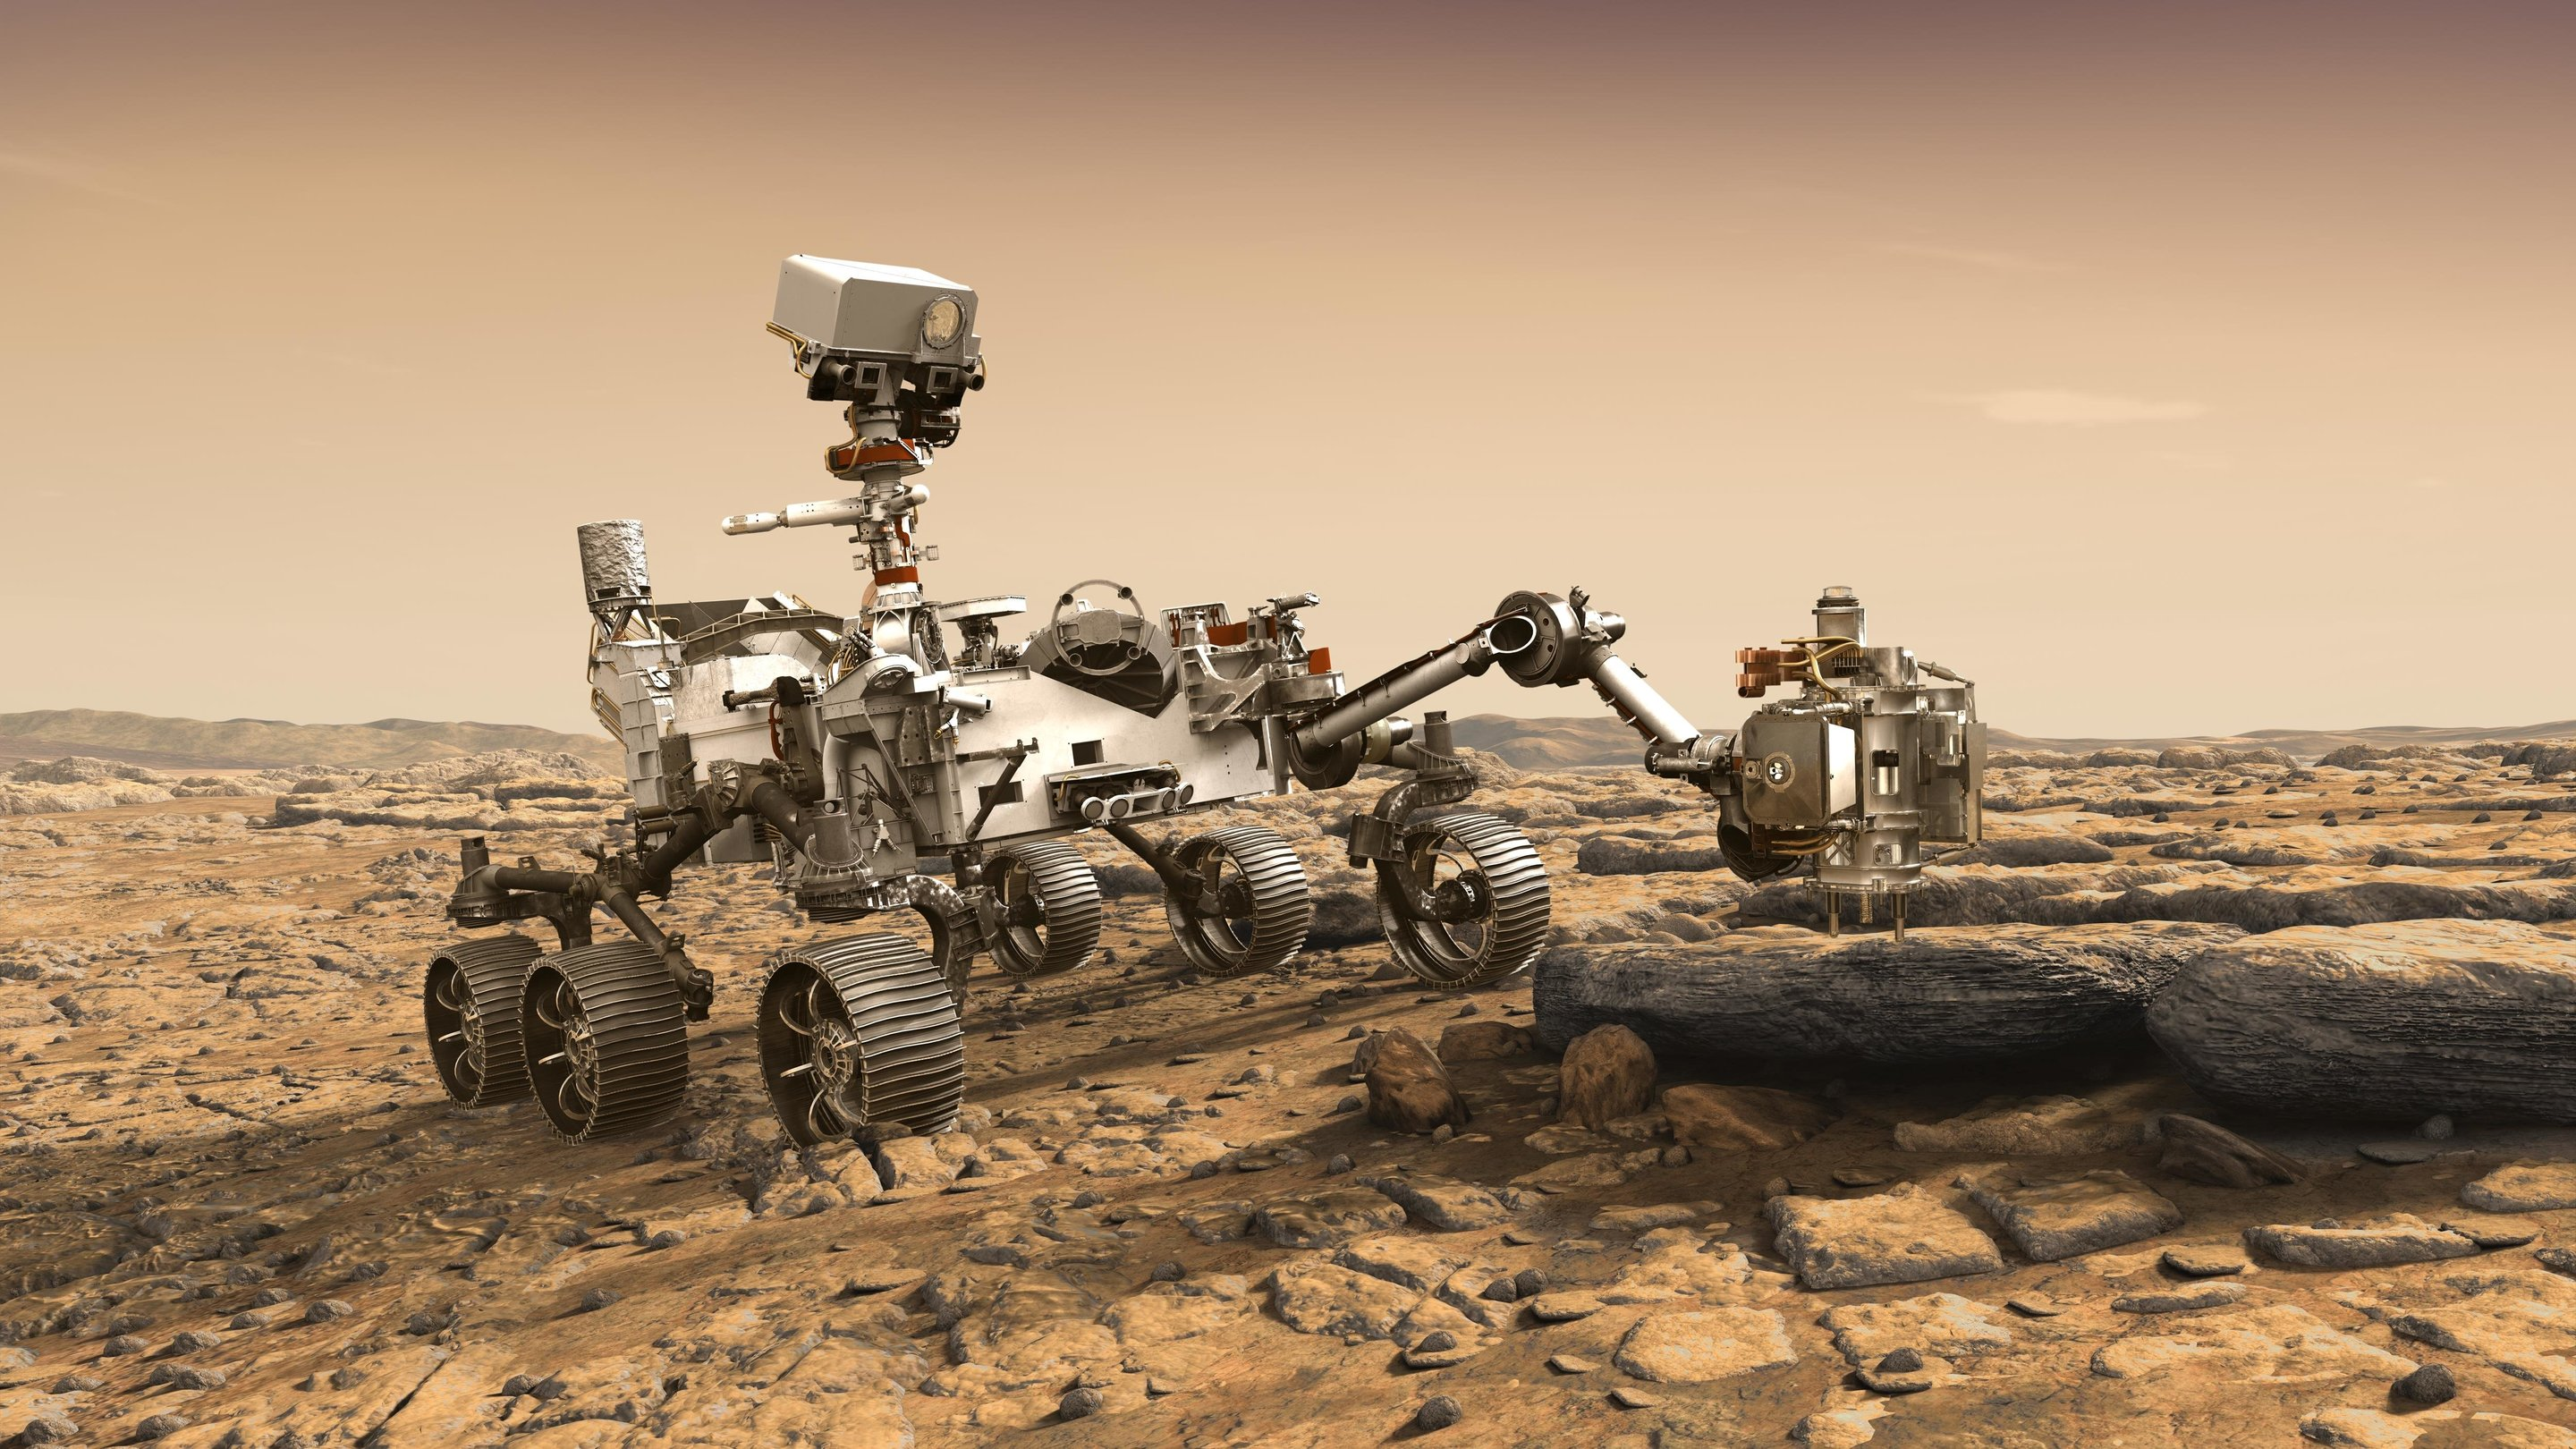 curiosity rover pictures - HD 1732×975